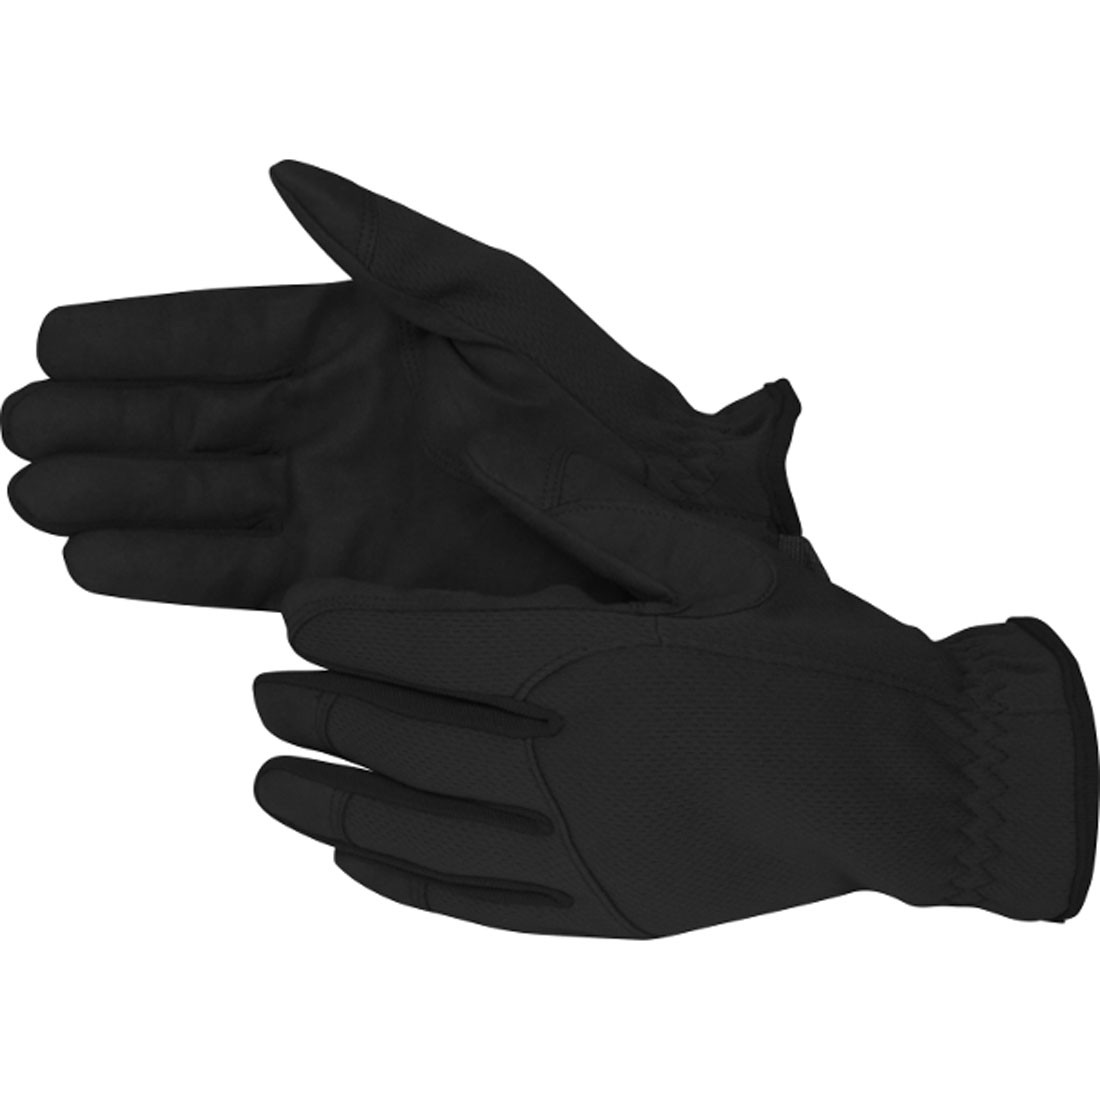 Viper Patrol Gloves Black Large